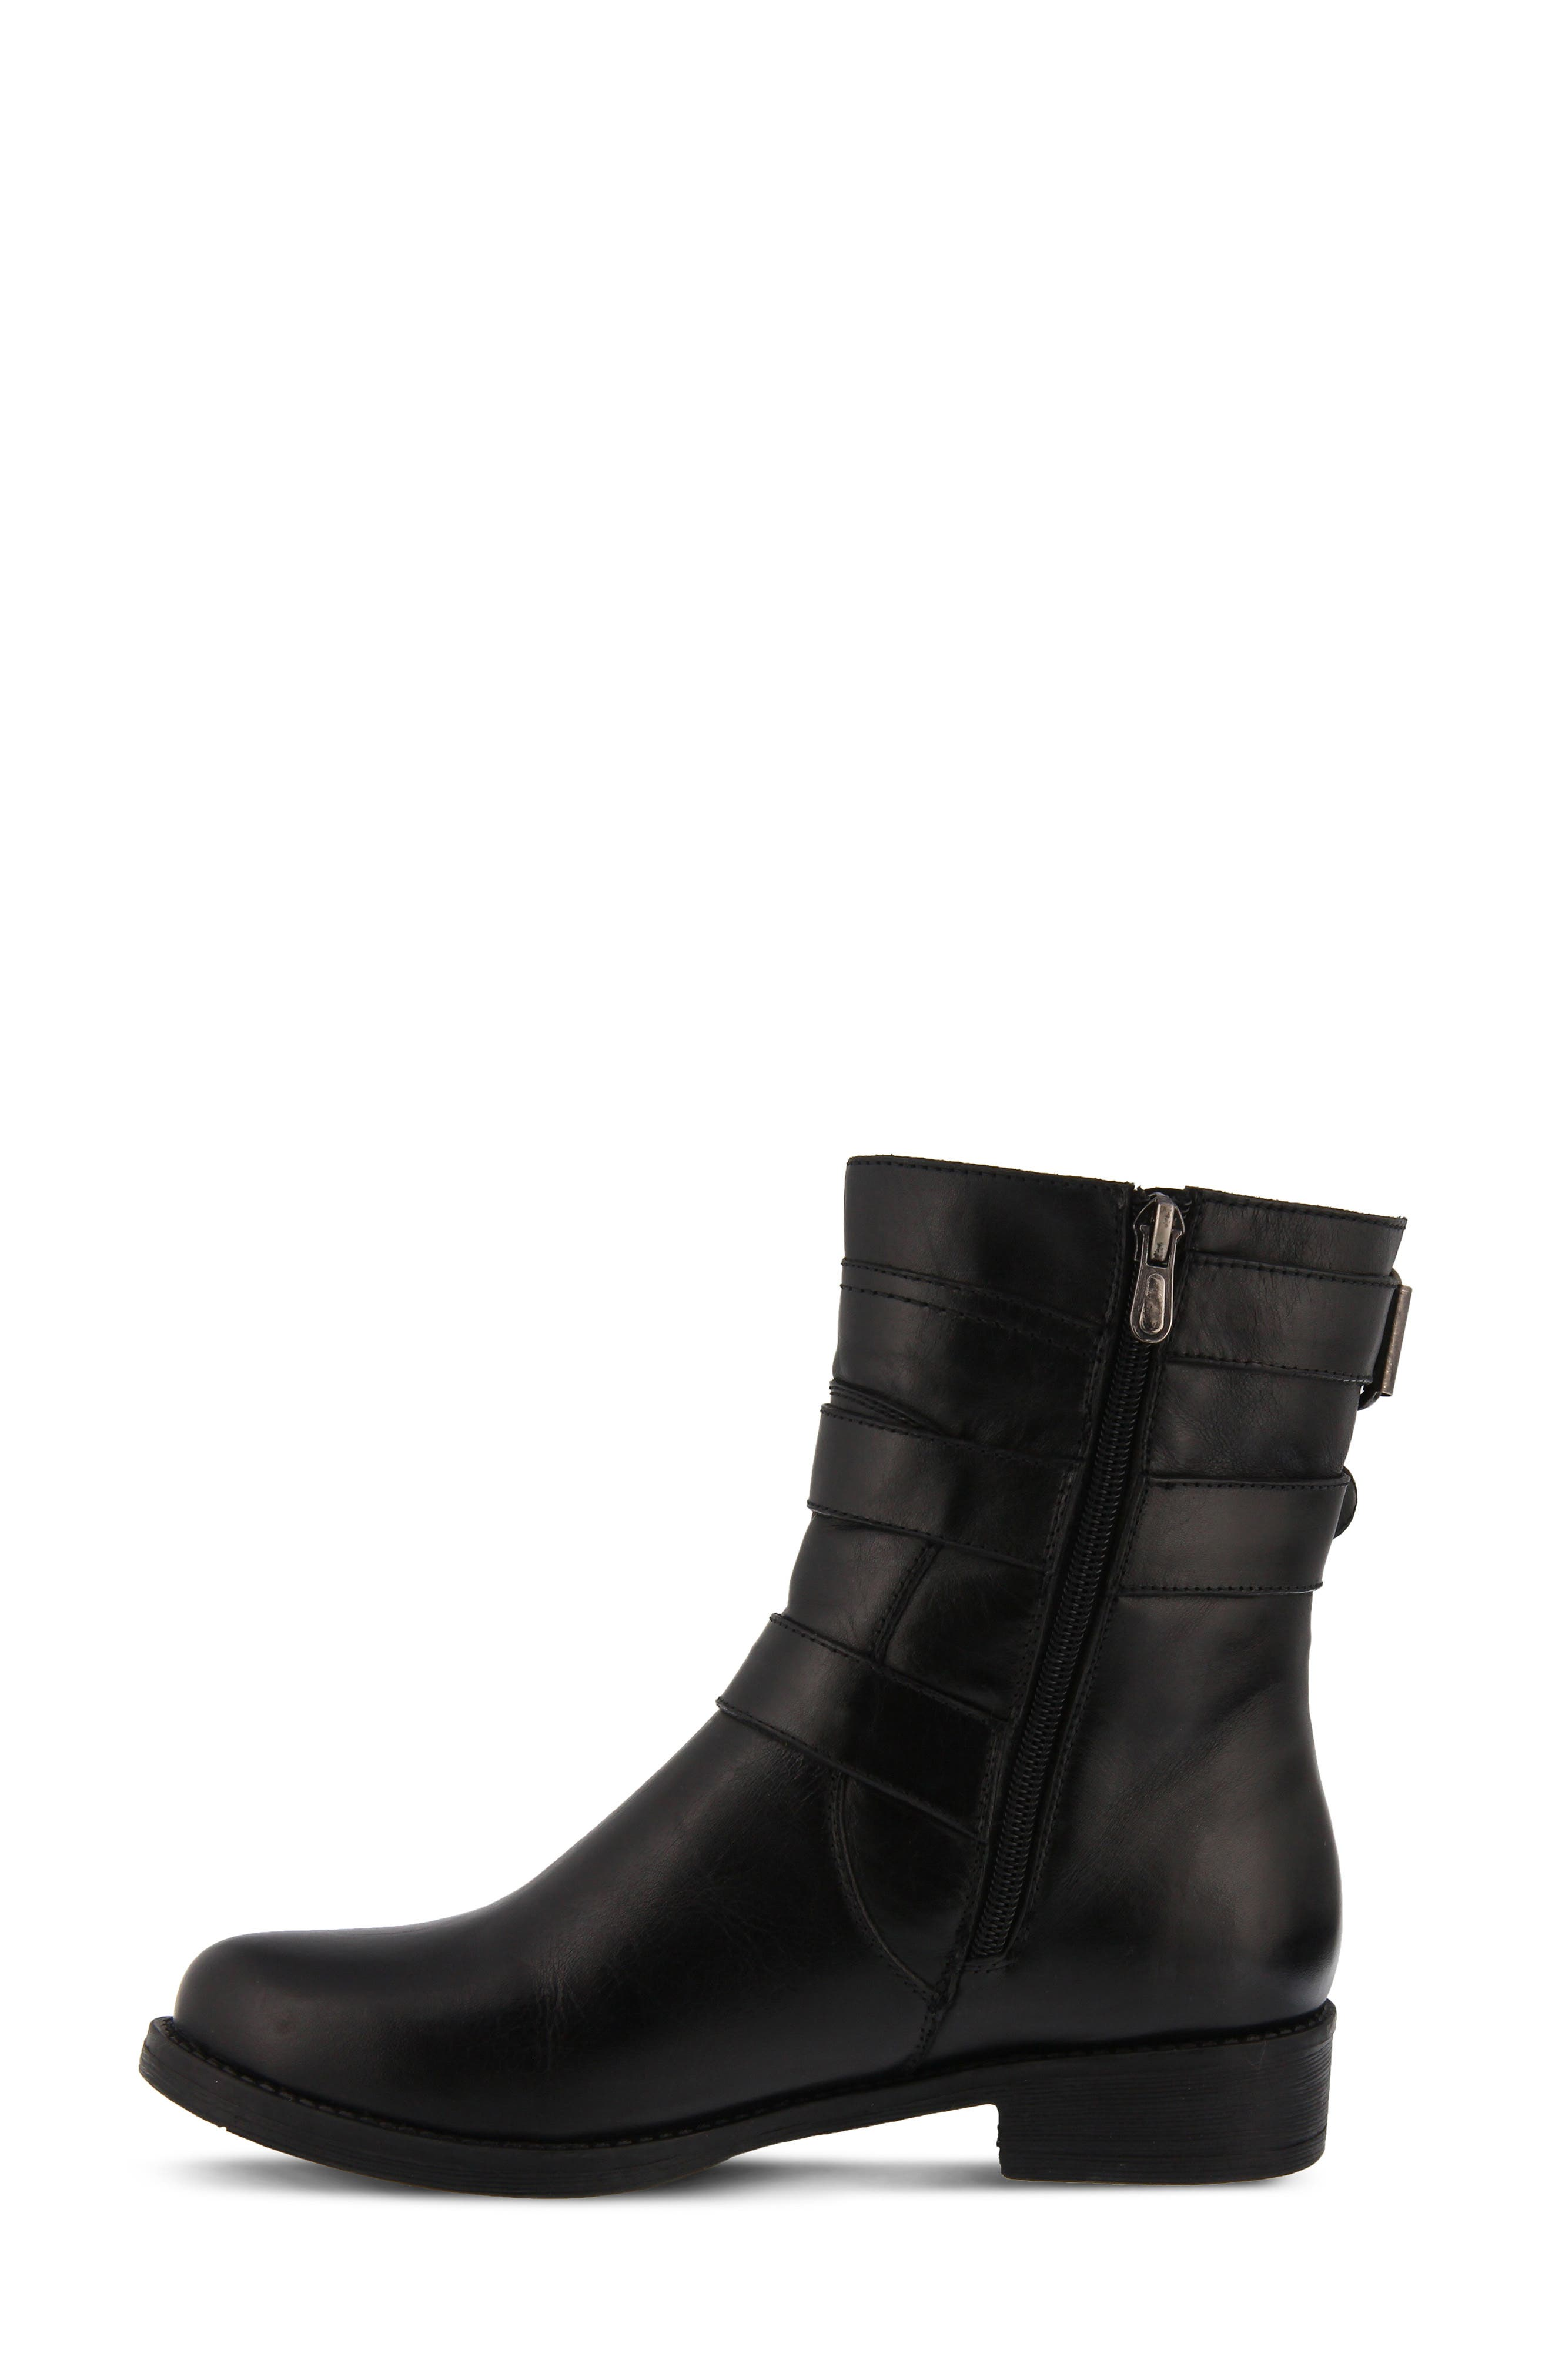 Diony Engineer Bootie,                             Alternate thumbnail 6, color,                             BLACK LEATHER